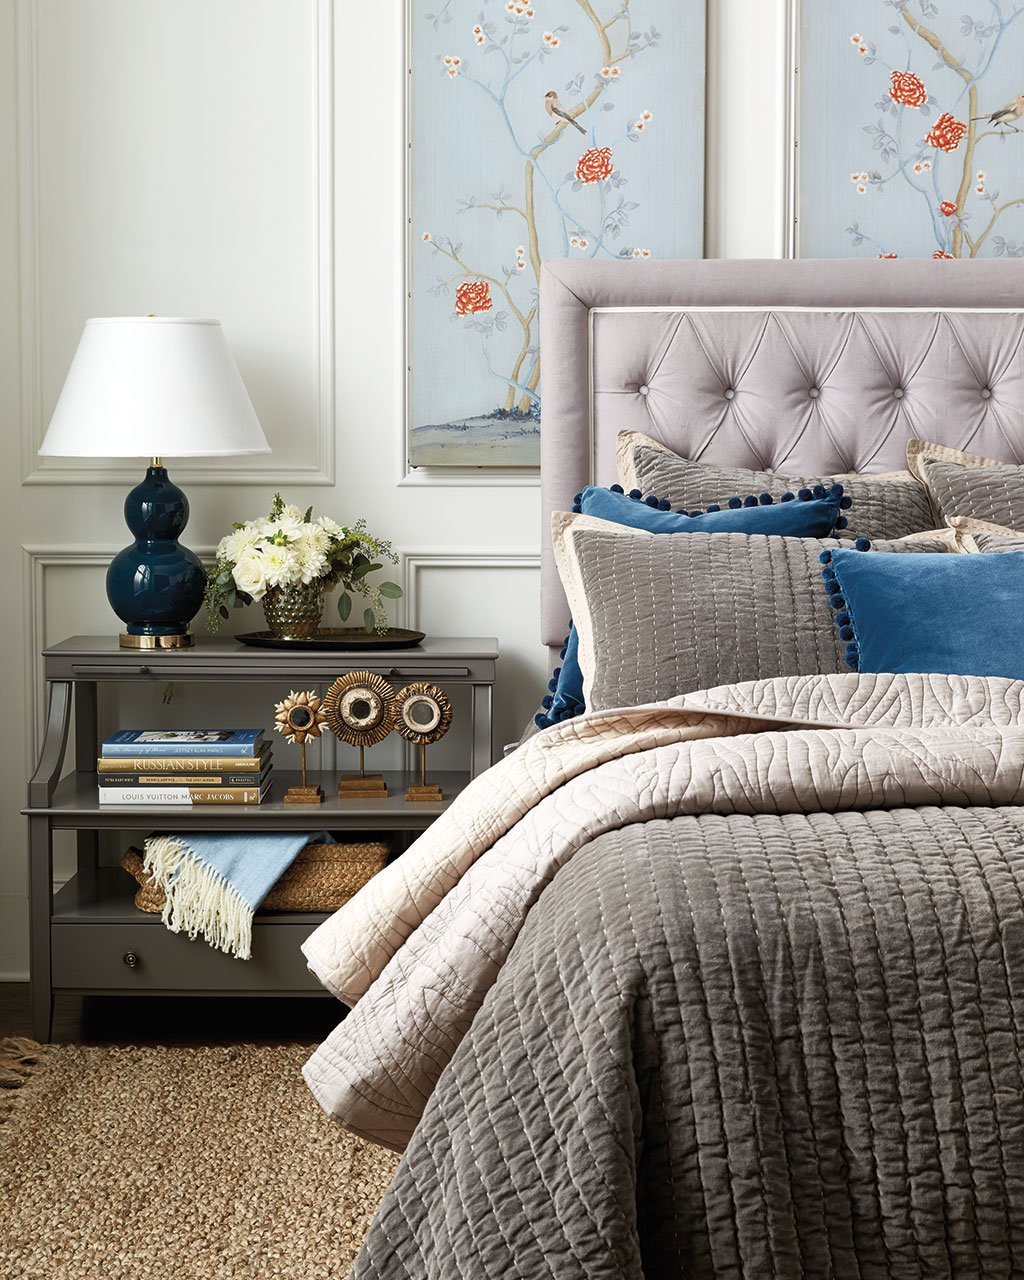 navy the new neutral how to decorate sidney open side table jardin en bleu art lucca velvet stitched quilt faux bois quilt giselle tufted headboard queen ballard designs and more